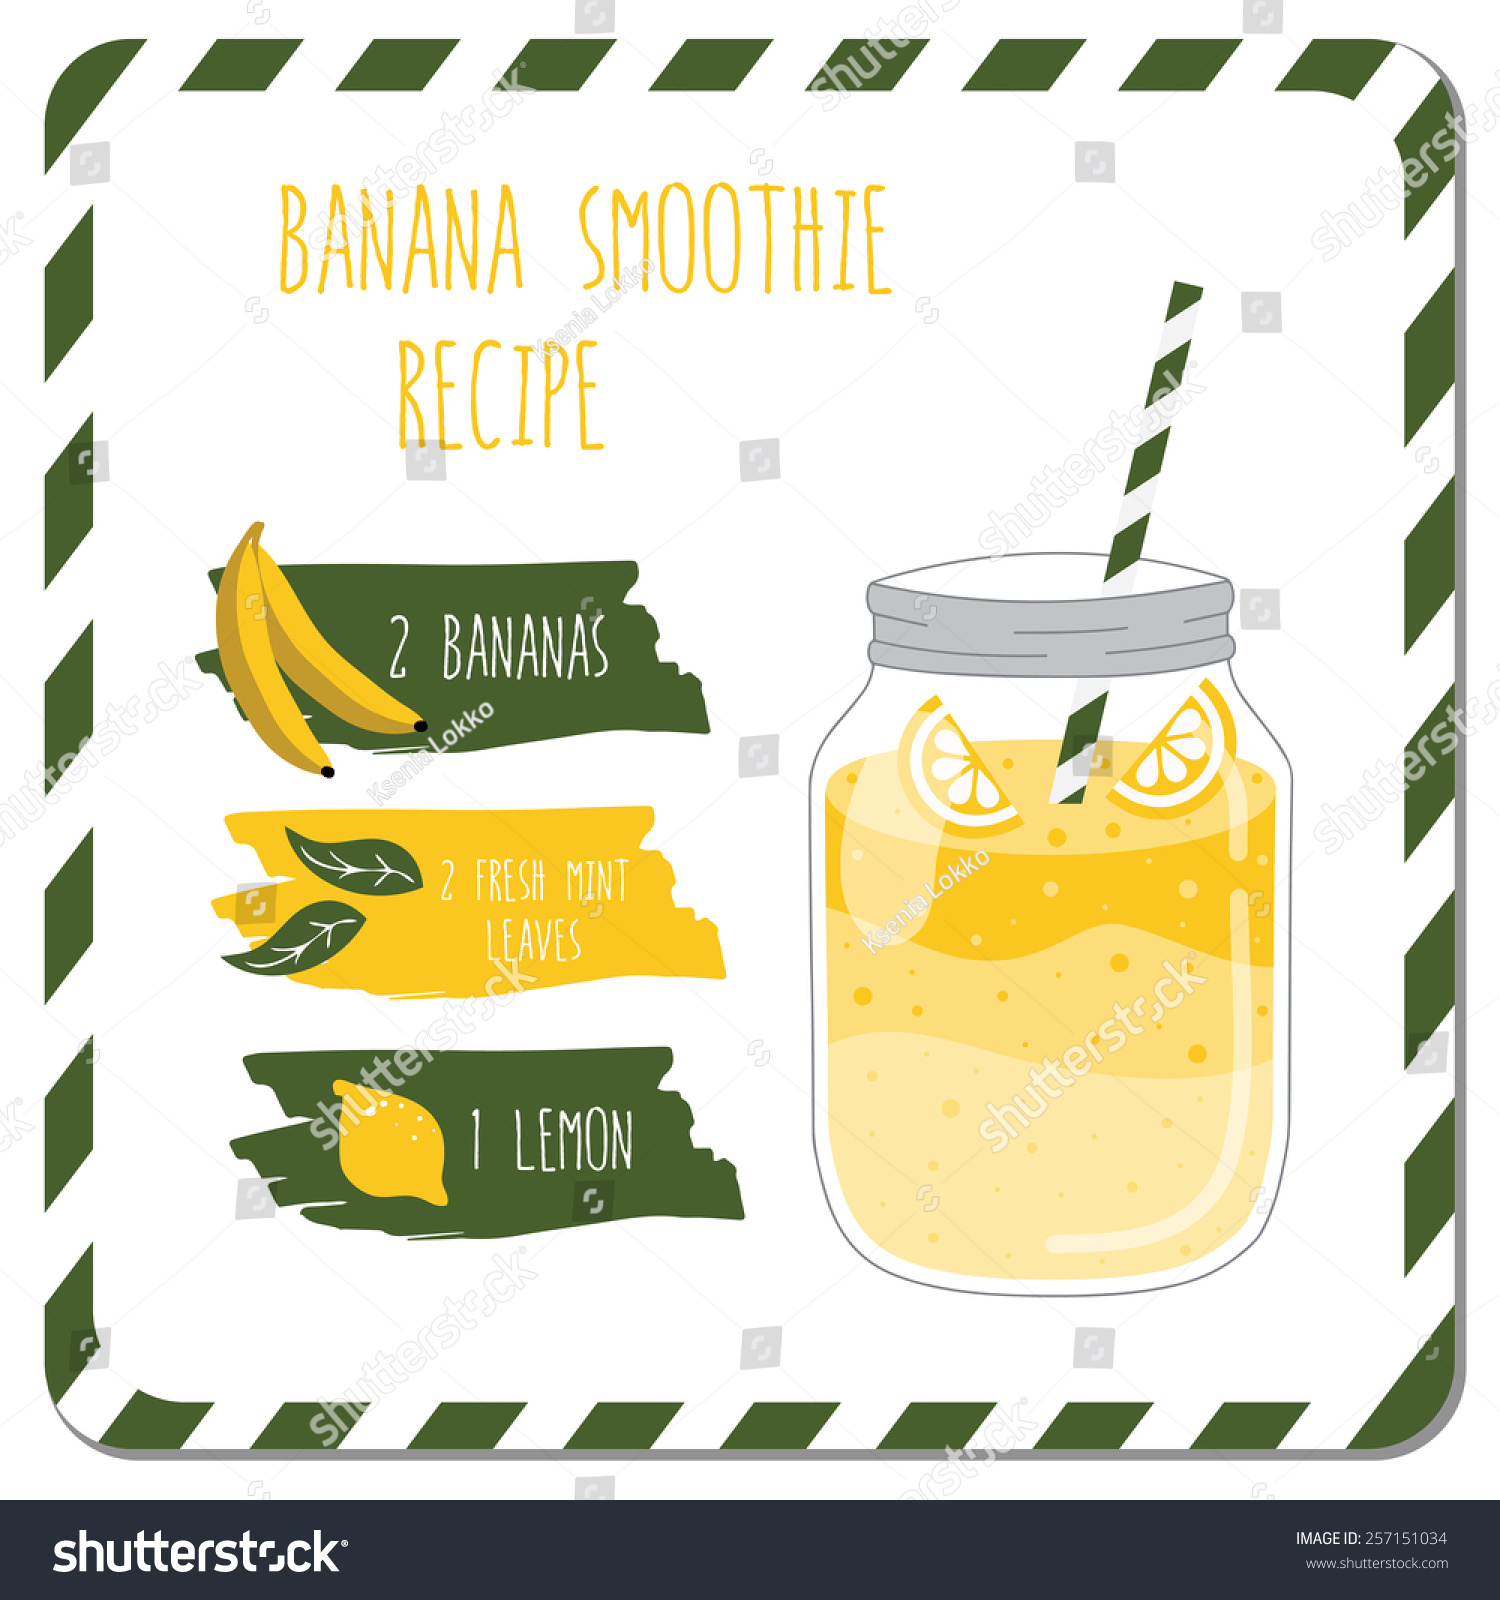 Banana Smoothie Recipe Used Kitchen Cafe Stock Photo (Photo, Vector ...